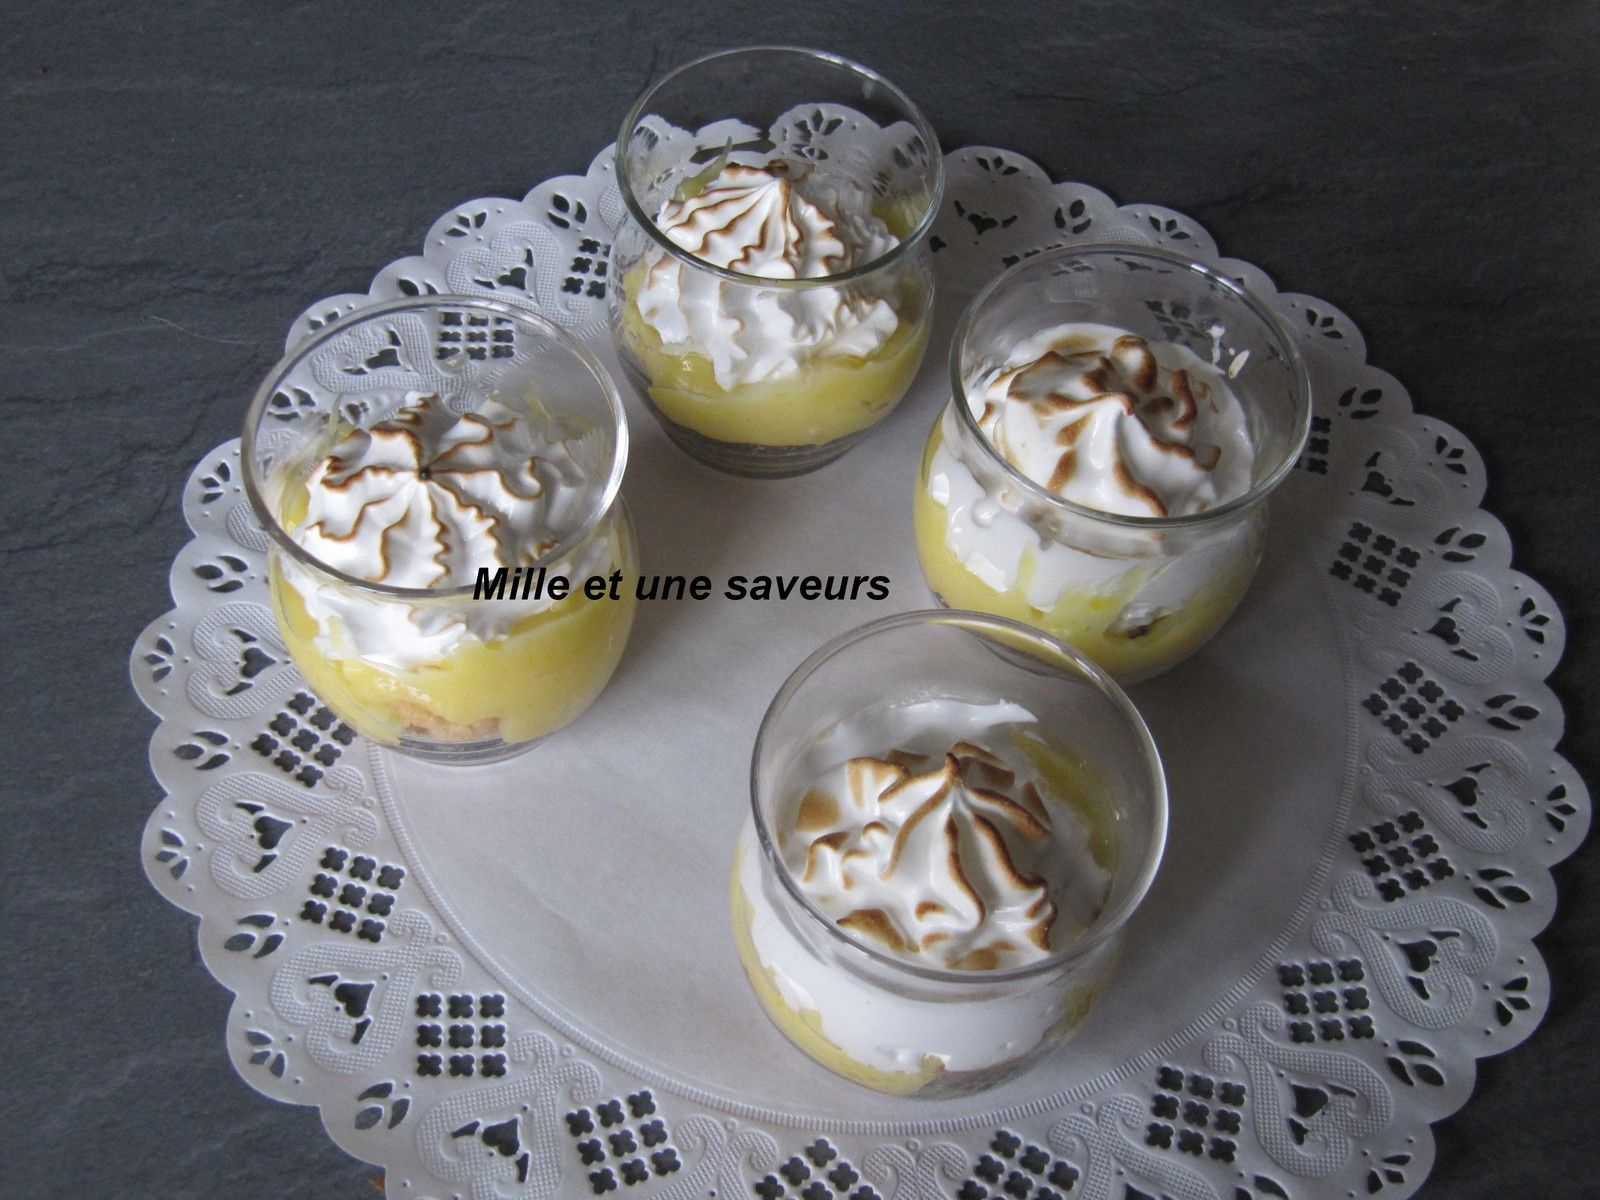 Verrine tarte citron meringué revisité, incroyablement bon